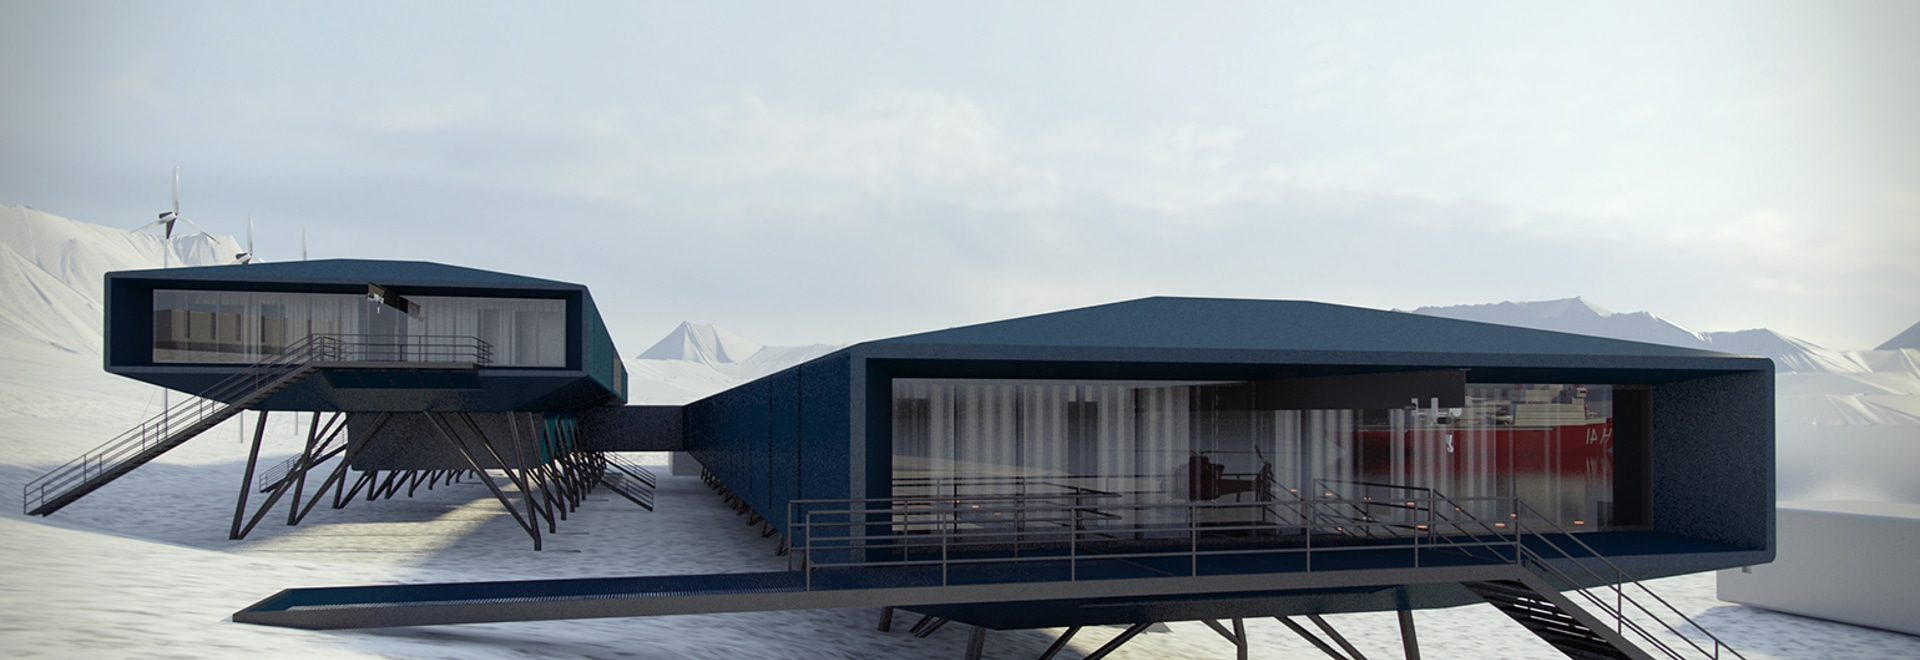 Brazillian firm Estúdio 41 Arquitetura has been working on a new design for the country's Comandante Ferraz Antarctic research centre, which was destroyed in a fire four years ago